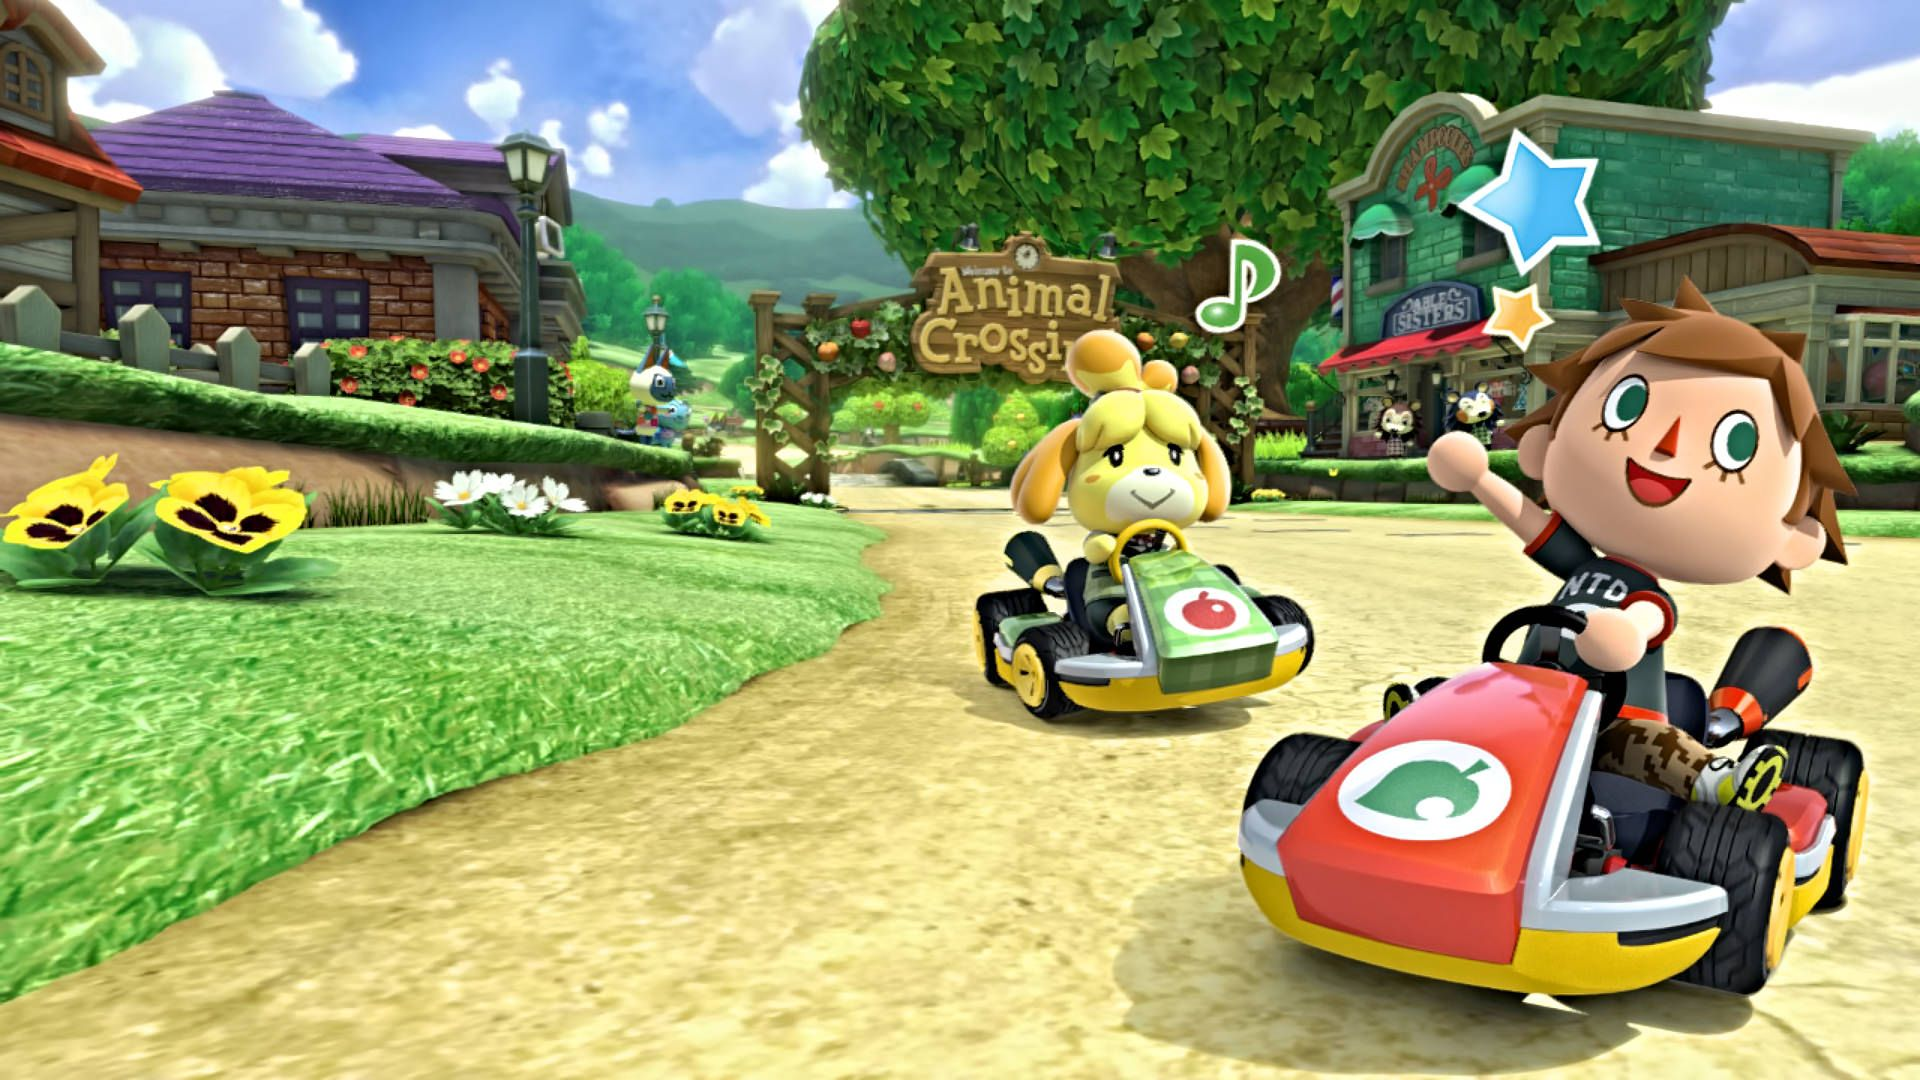 Image Result For Mario Kart 8 Deluxe With Images Mario Kart